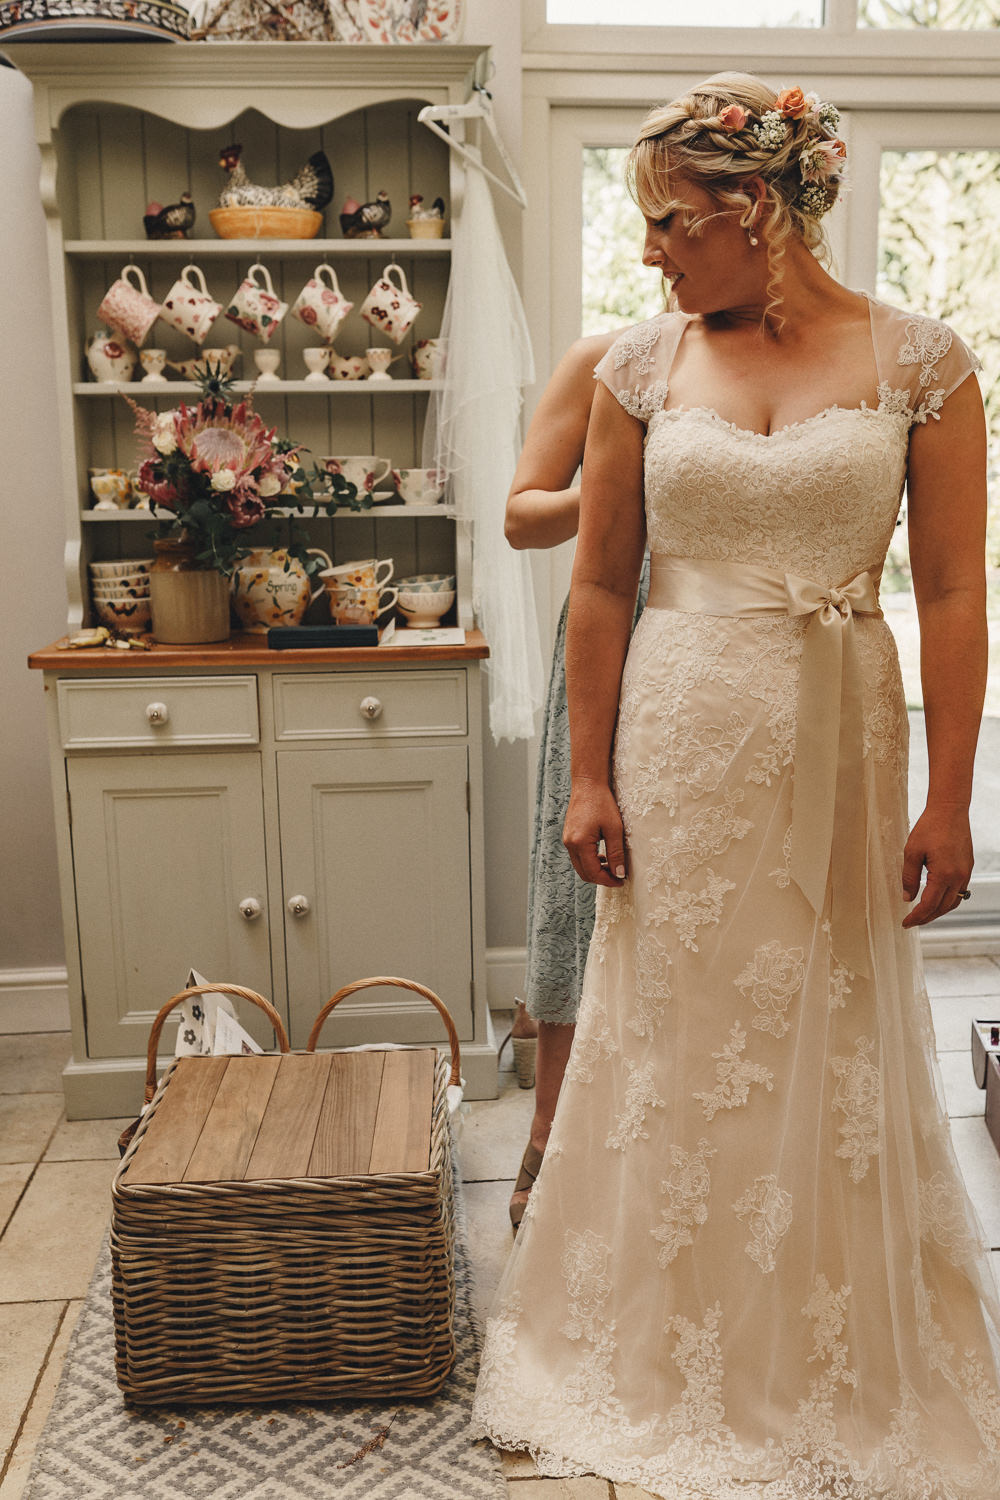 Dress Gown Bride Bridal Lace Ribbon Sash Bow Train Marquee Wedding Home The Chamberlins